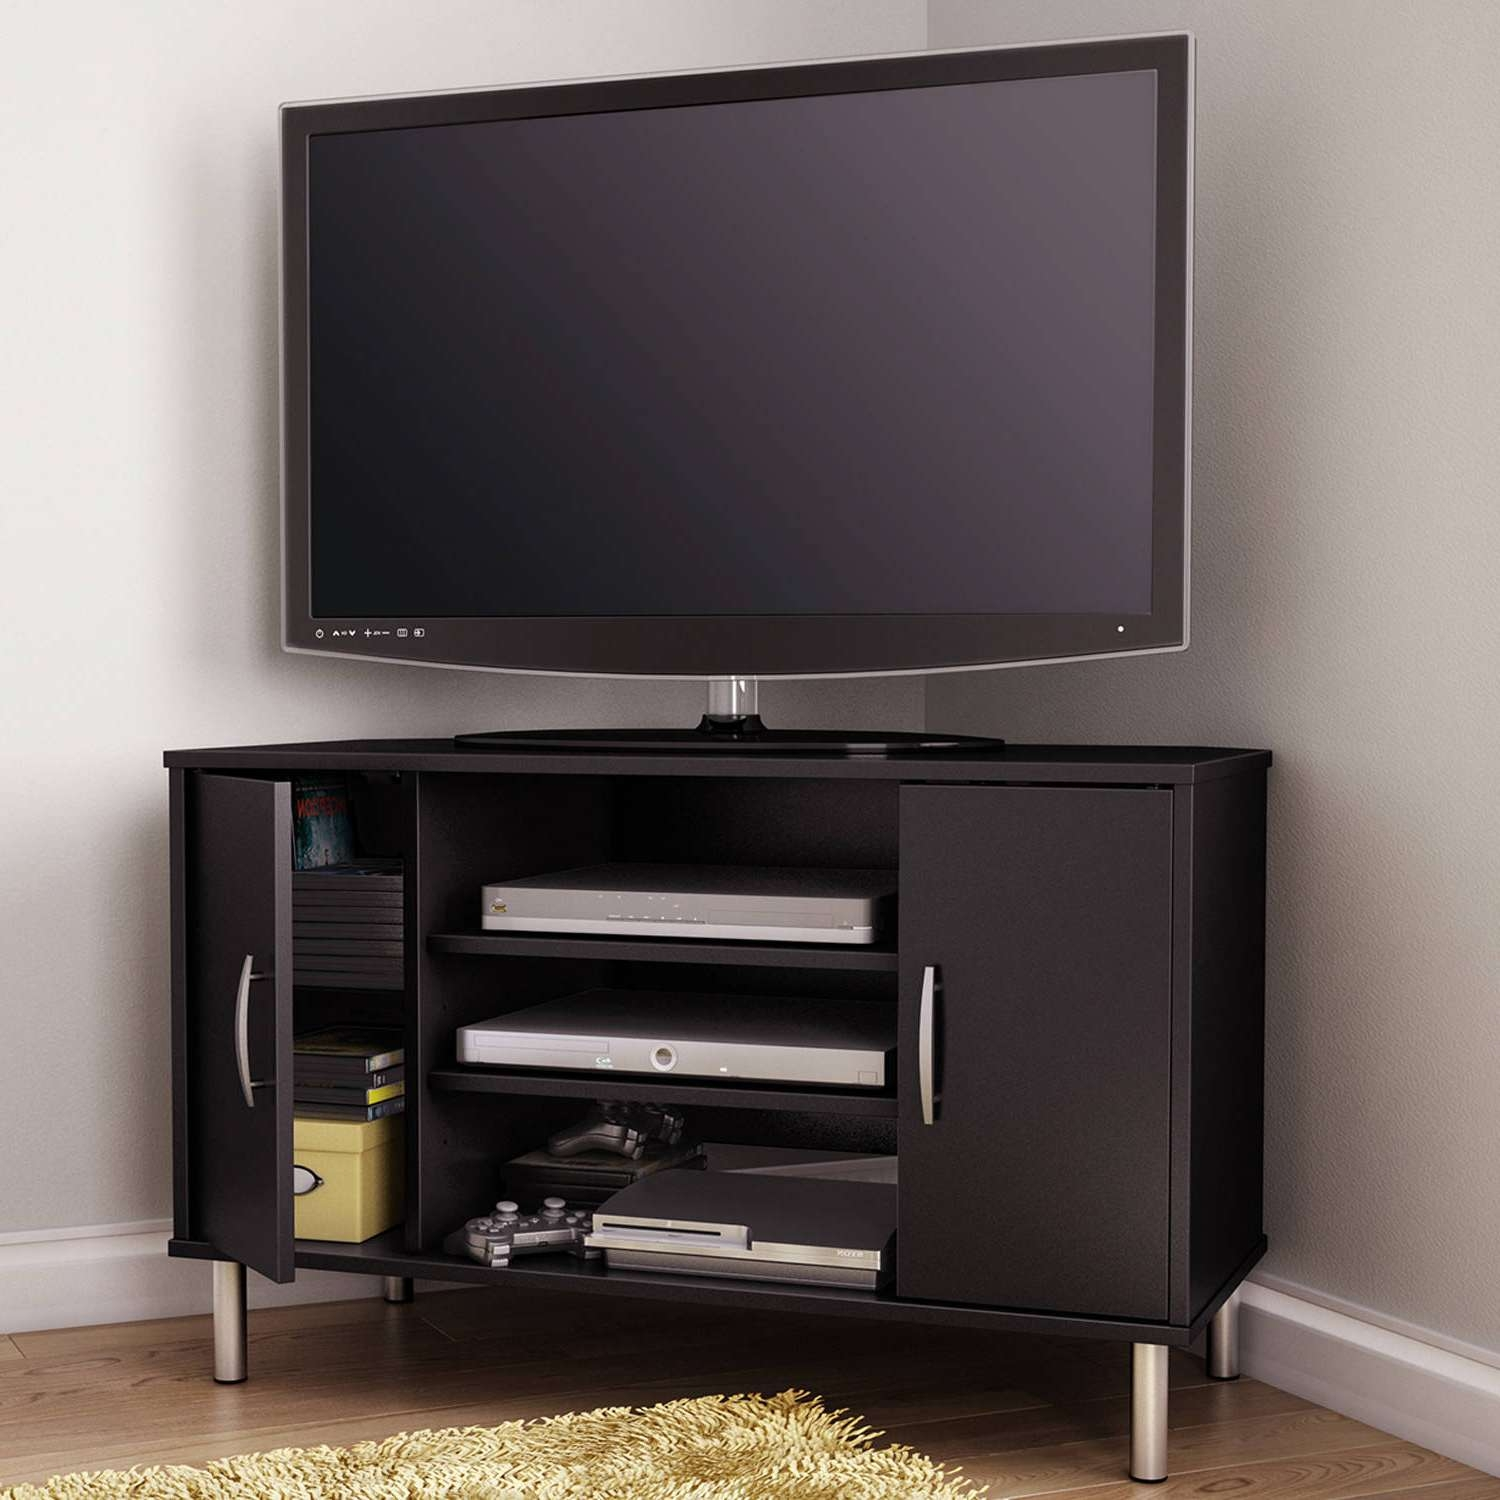 Corner Tv Stands For Flat Screen Tvs Regarding Cheap Corner Tv Stands For Flat Screen (View 3 of 15)